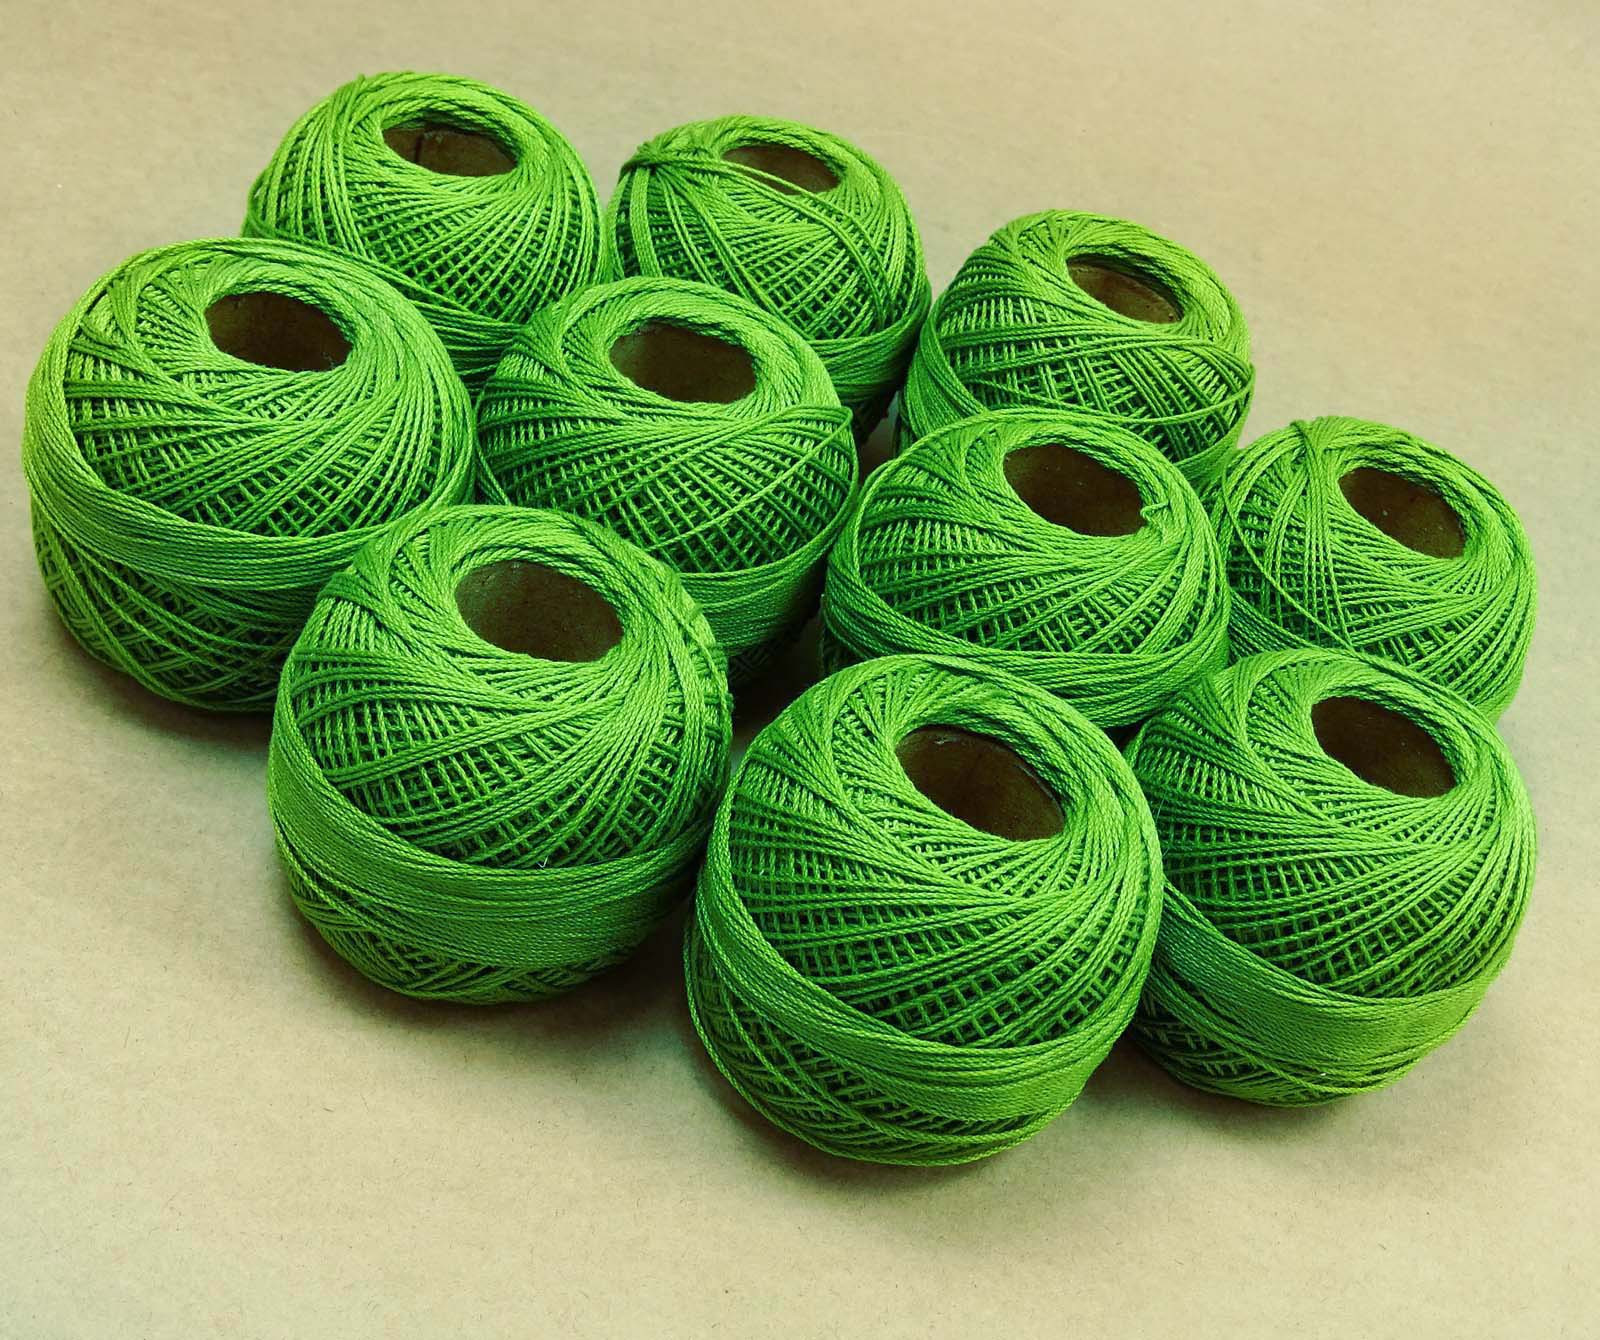 Crochet Cotton Best Of Anchor Crochet Polyester Knitting Tatting Ball Embroidery Of Contemporary 41 Ideas Crochet Cotton